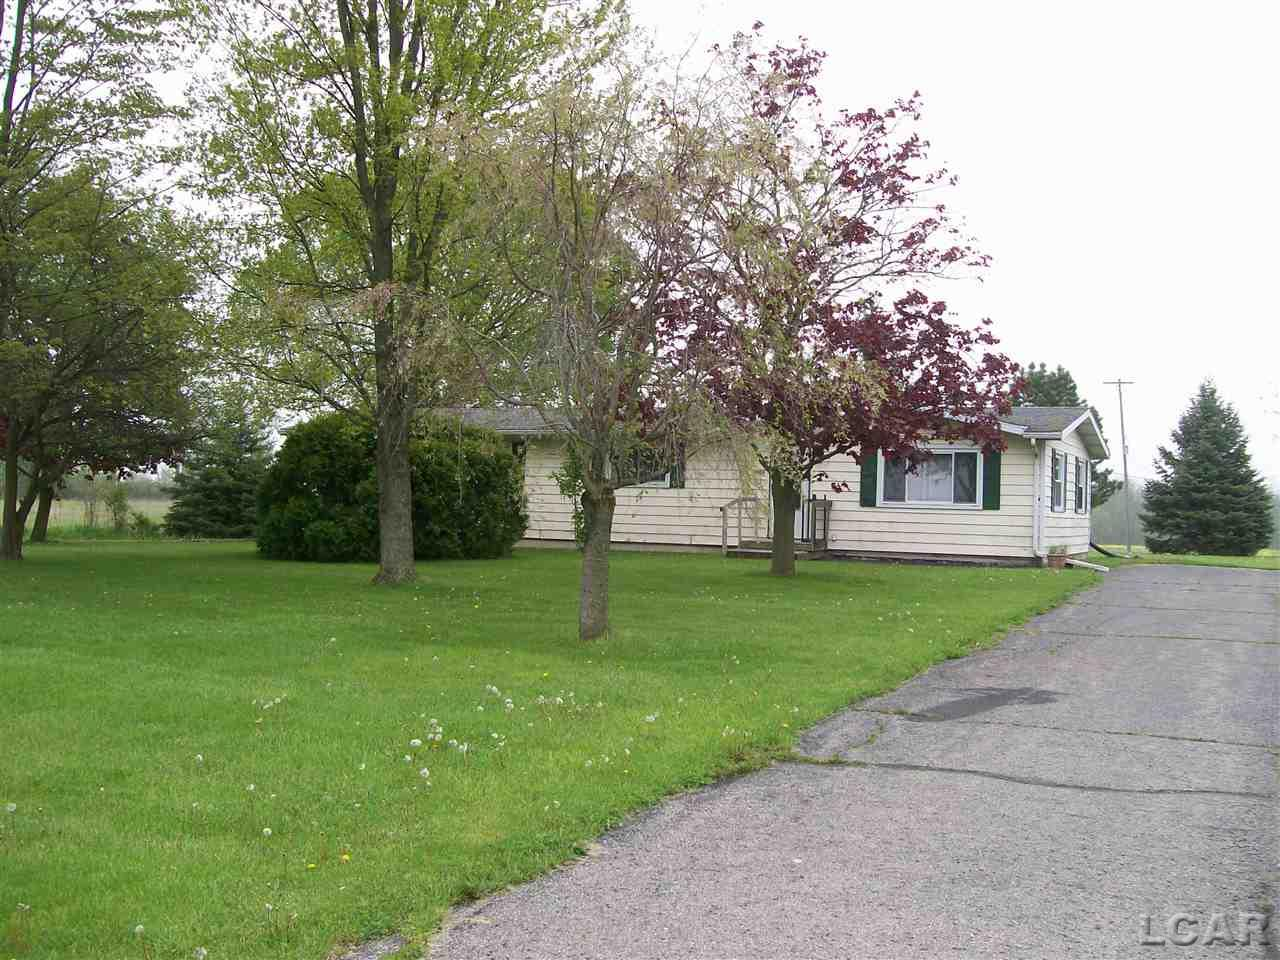 9415 Rome Rd, Rome Twp, Michigan 49221, 3 Bedrooms Bedrooms, ,2 BathroomsBathrooms,Residential,For Sale,Rome Rd,50004489